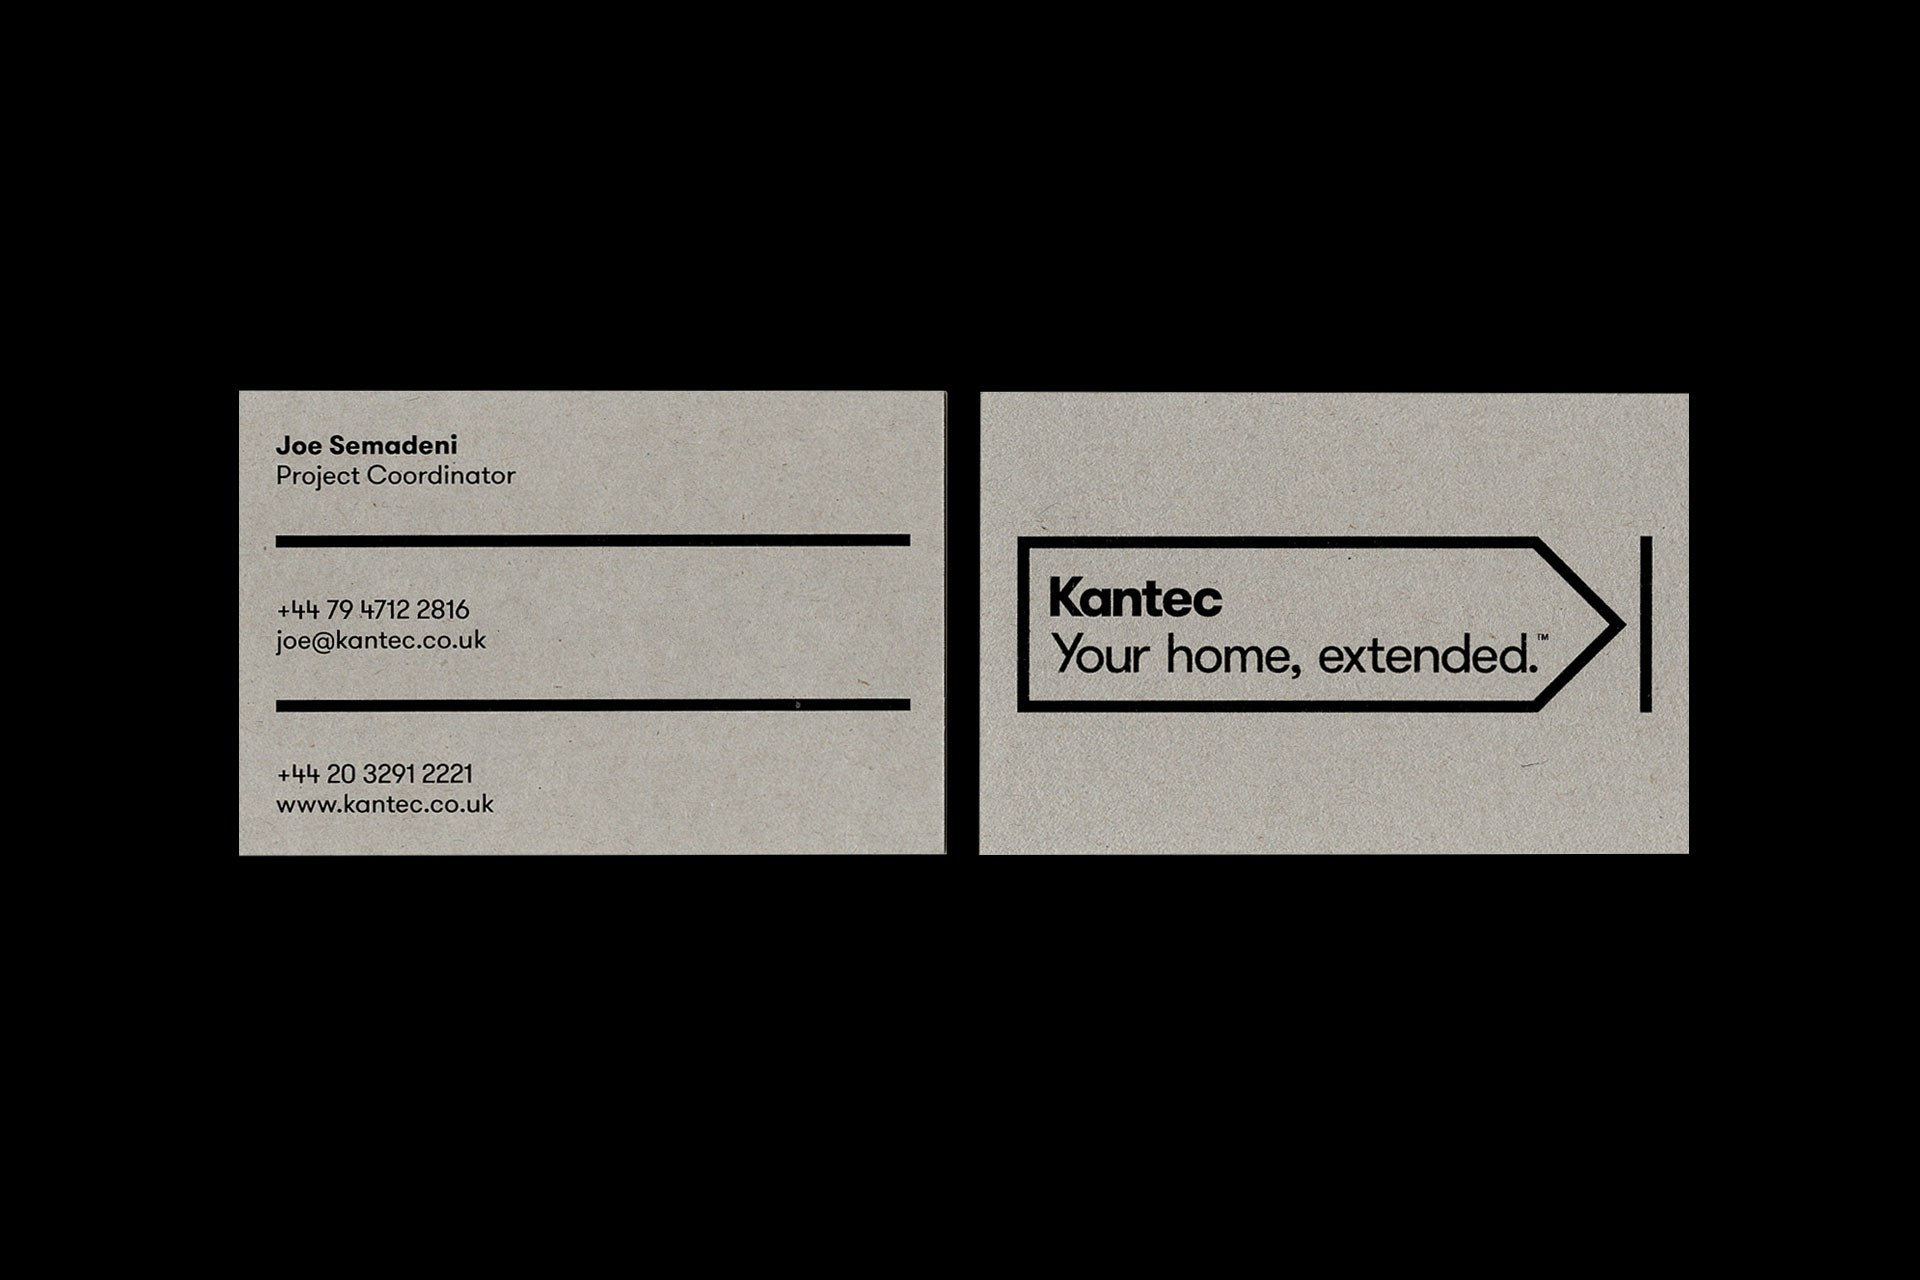 Kantec business cards printed on Nomad Grey Smooth paper stock.